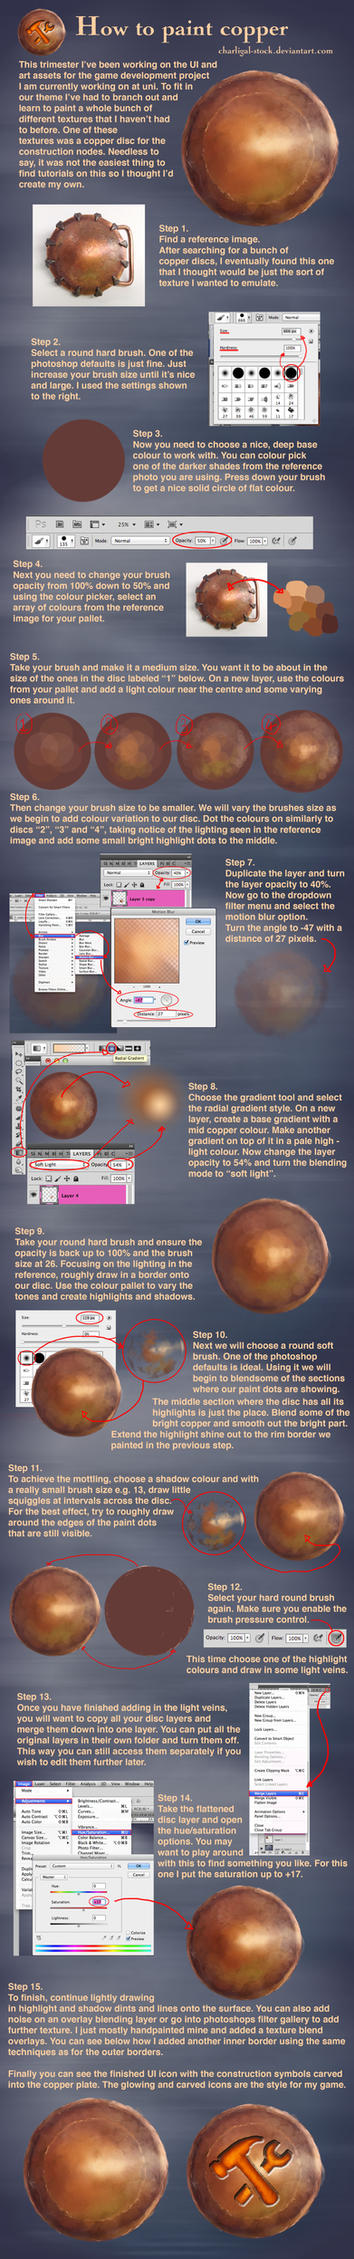 How To Paint Copper by charligal-stock